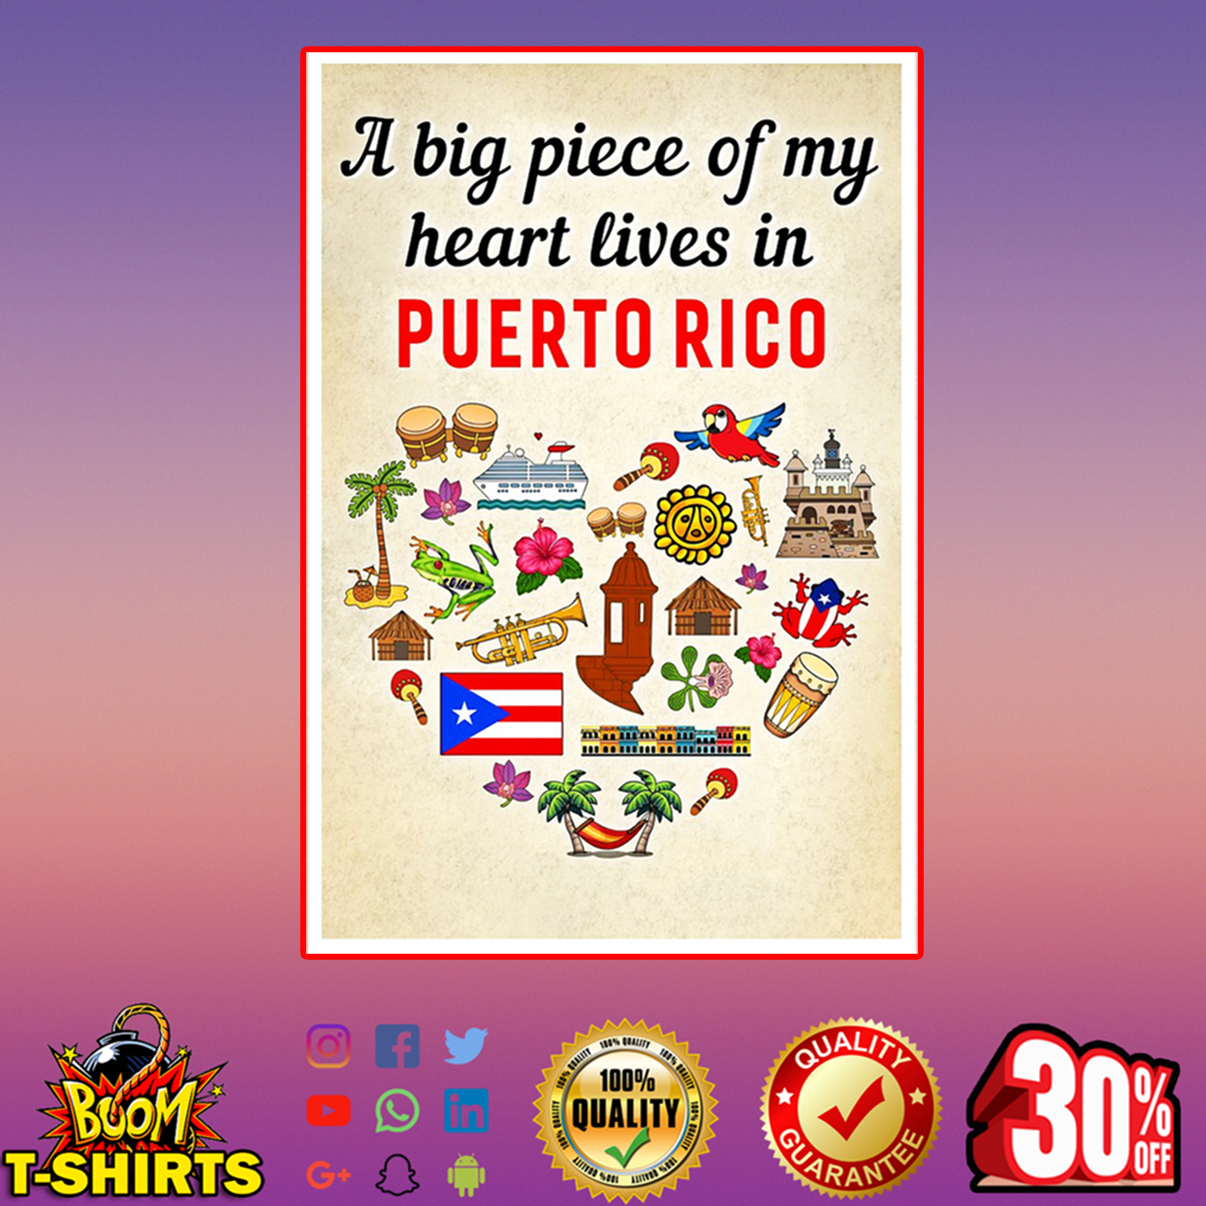 A big piece of my heart lives in Puerto Rico poster